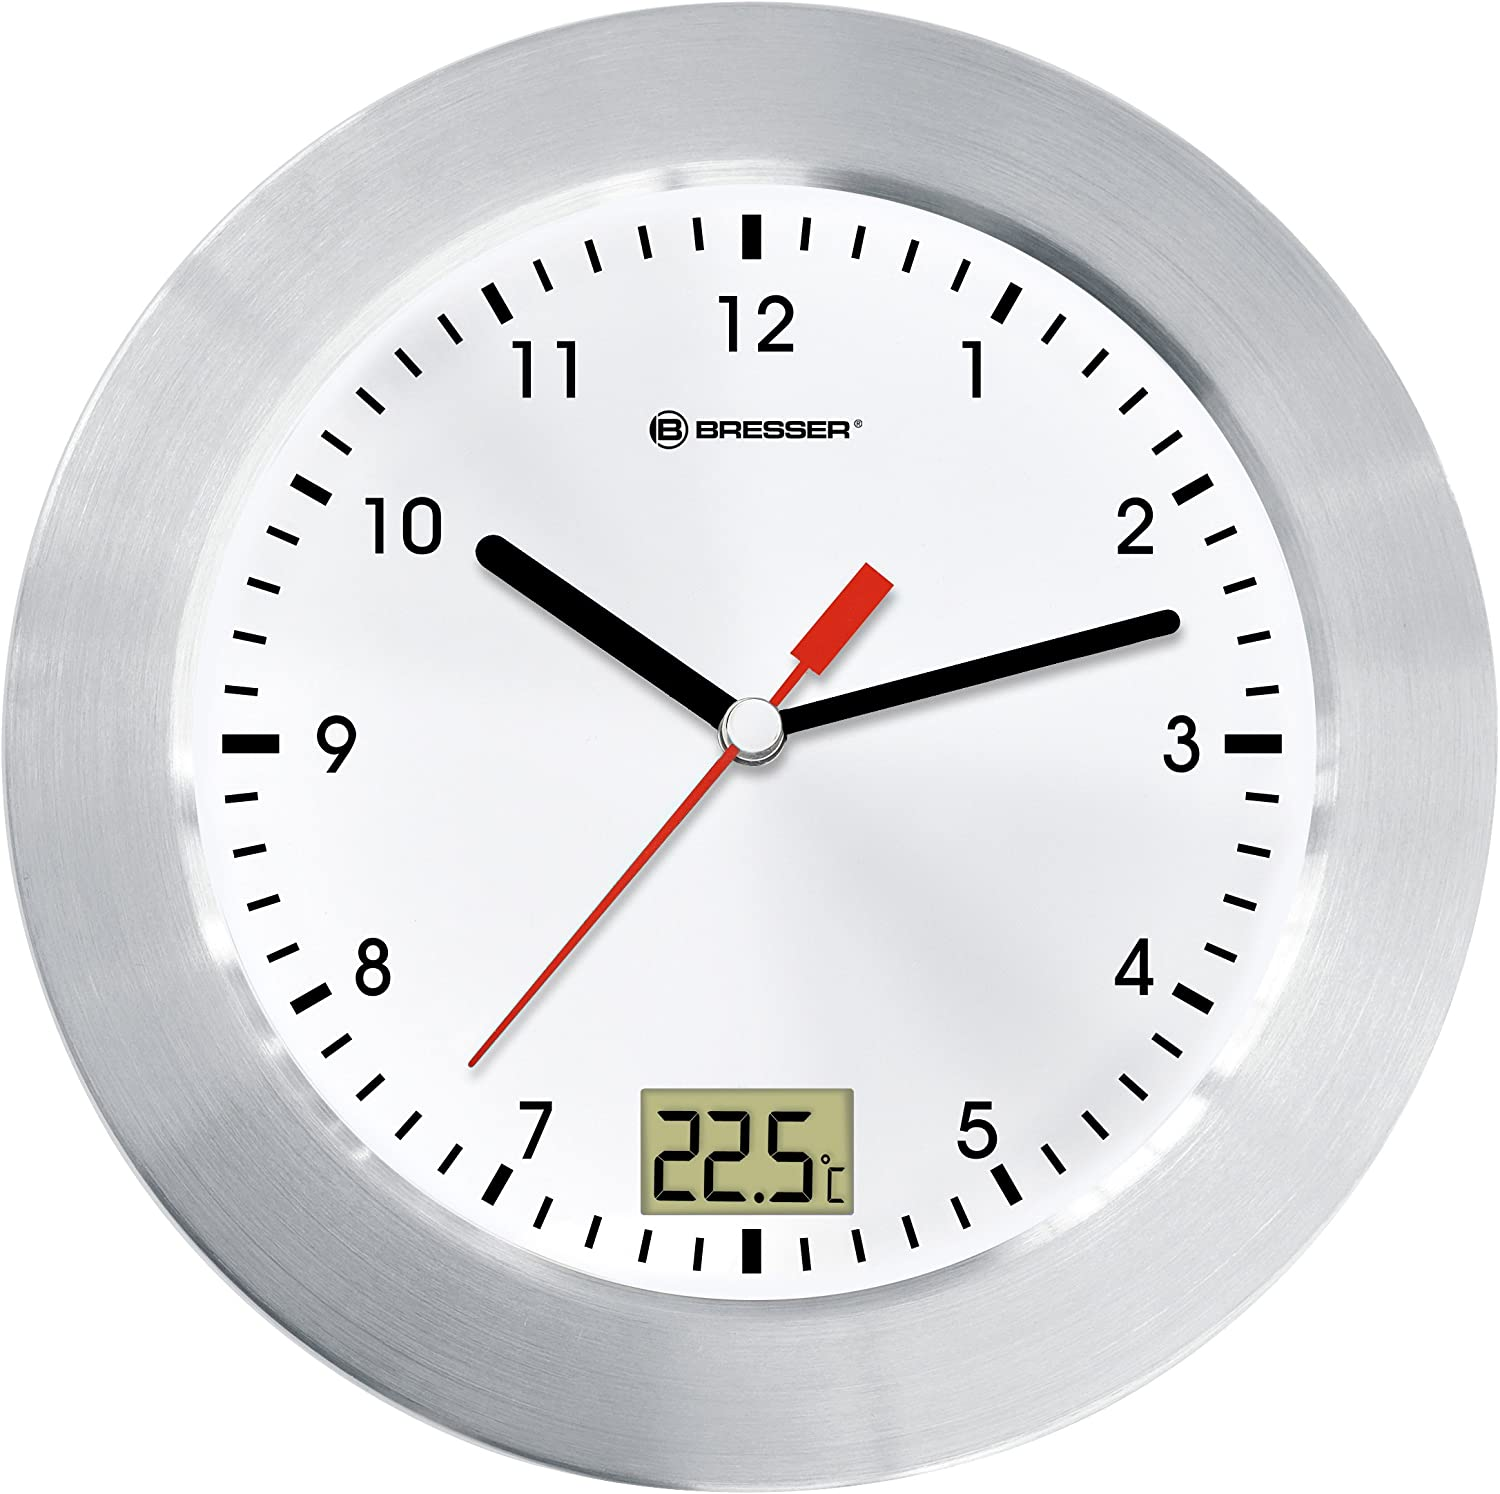 Bresser Wall Clock MyTime Bath for Bathroom with Temperature Display White//Sil